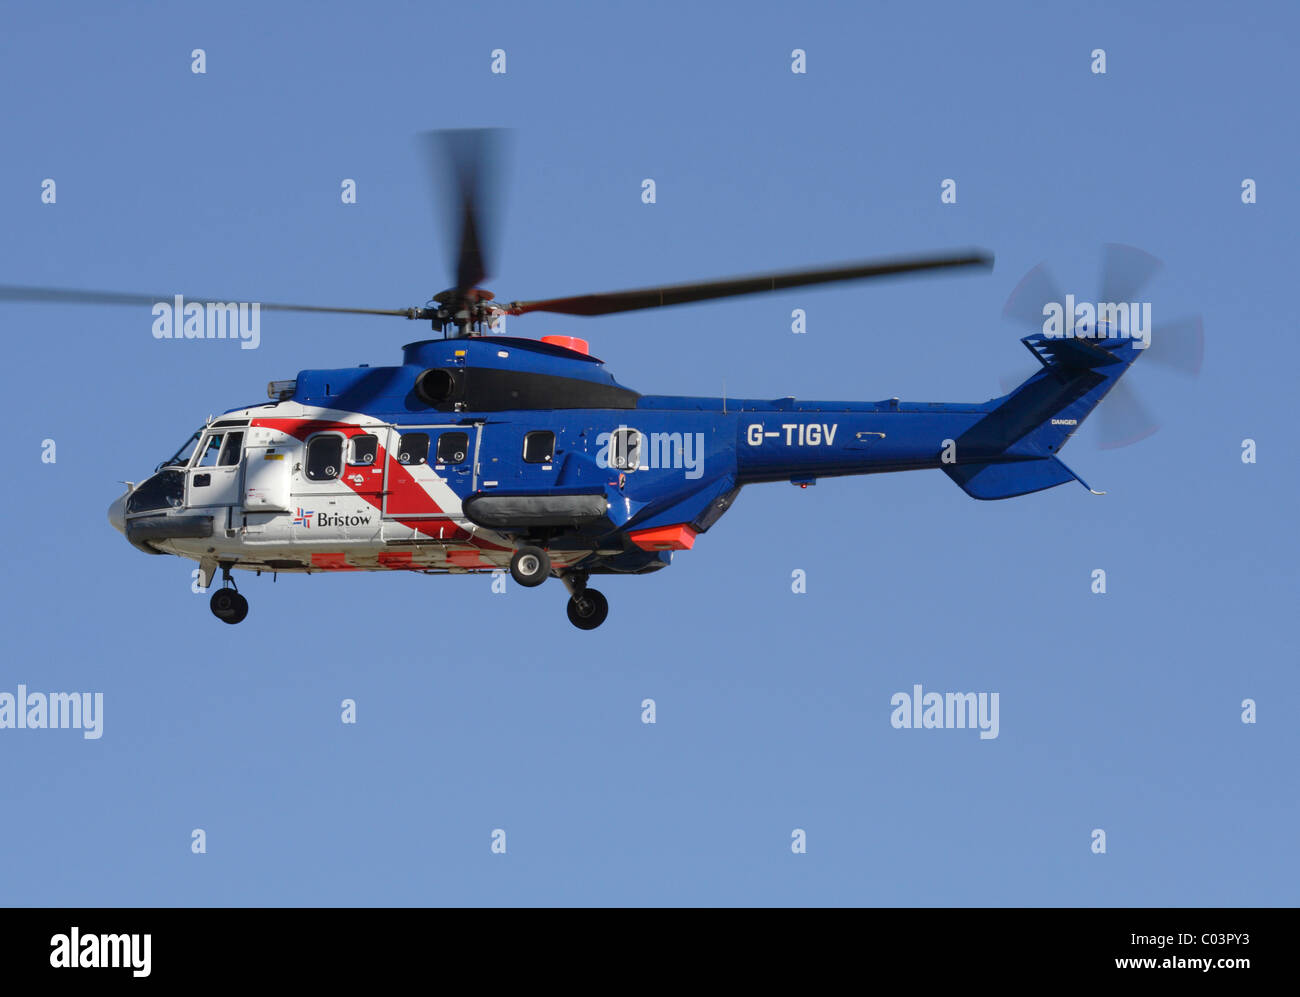 Eurocopter AS332 Super Puma helicopter operated by Bristow Helicopters - Stock Image